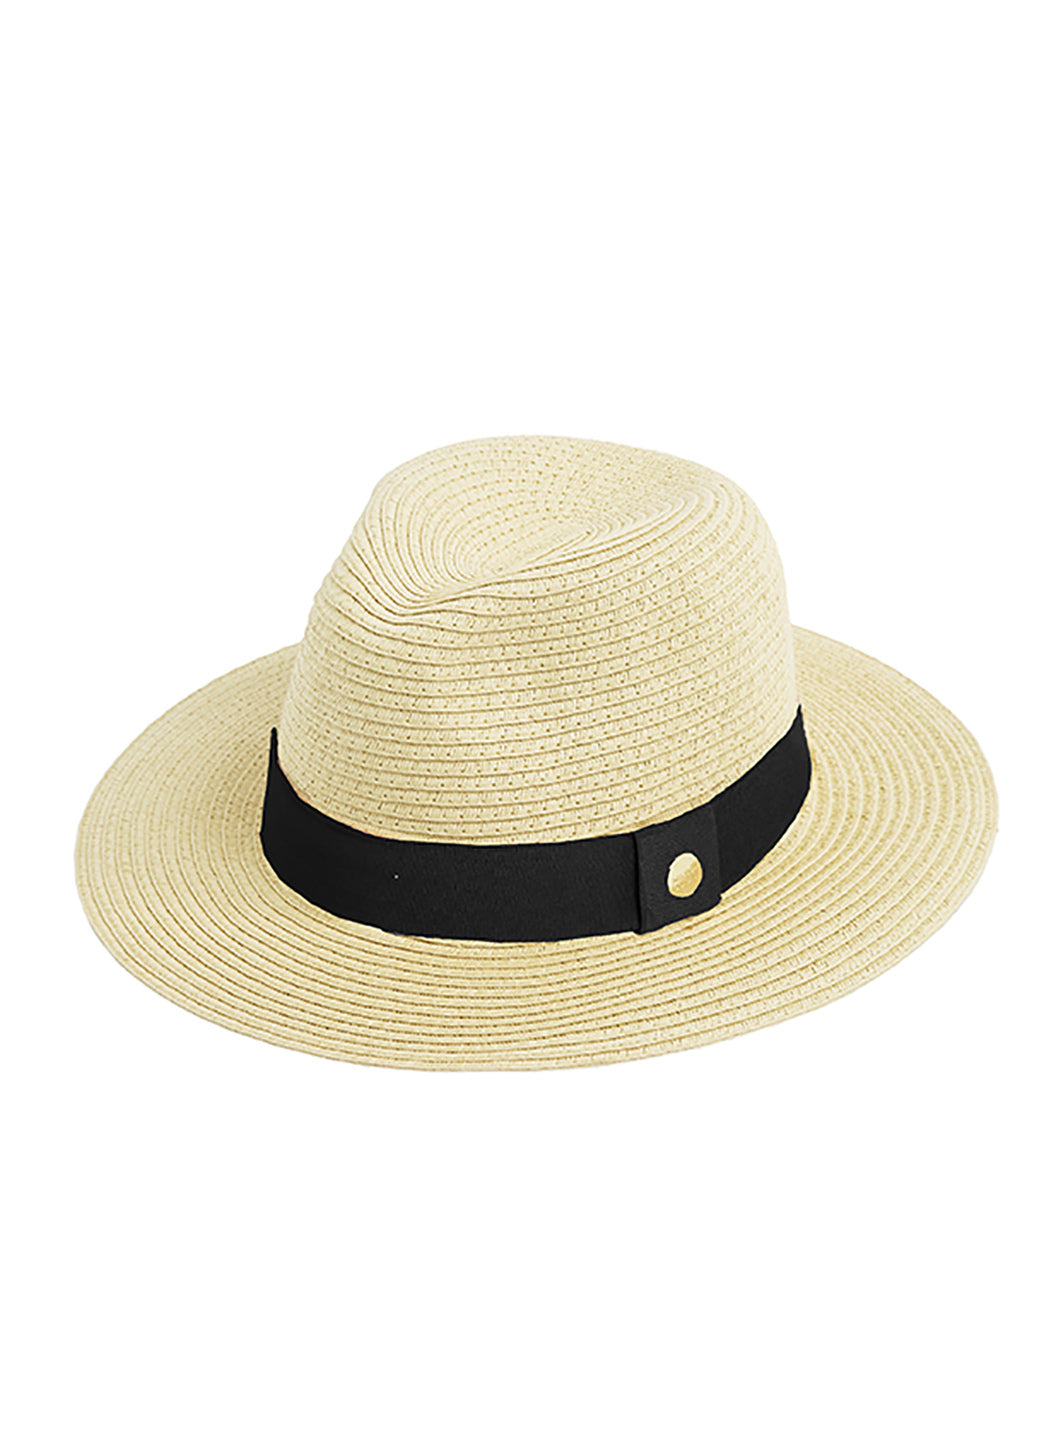 Fedora Hat Beige Black